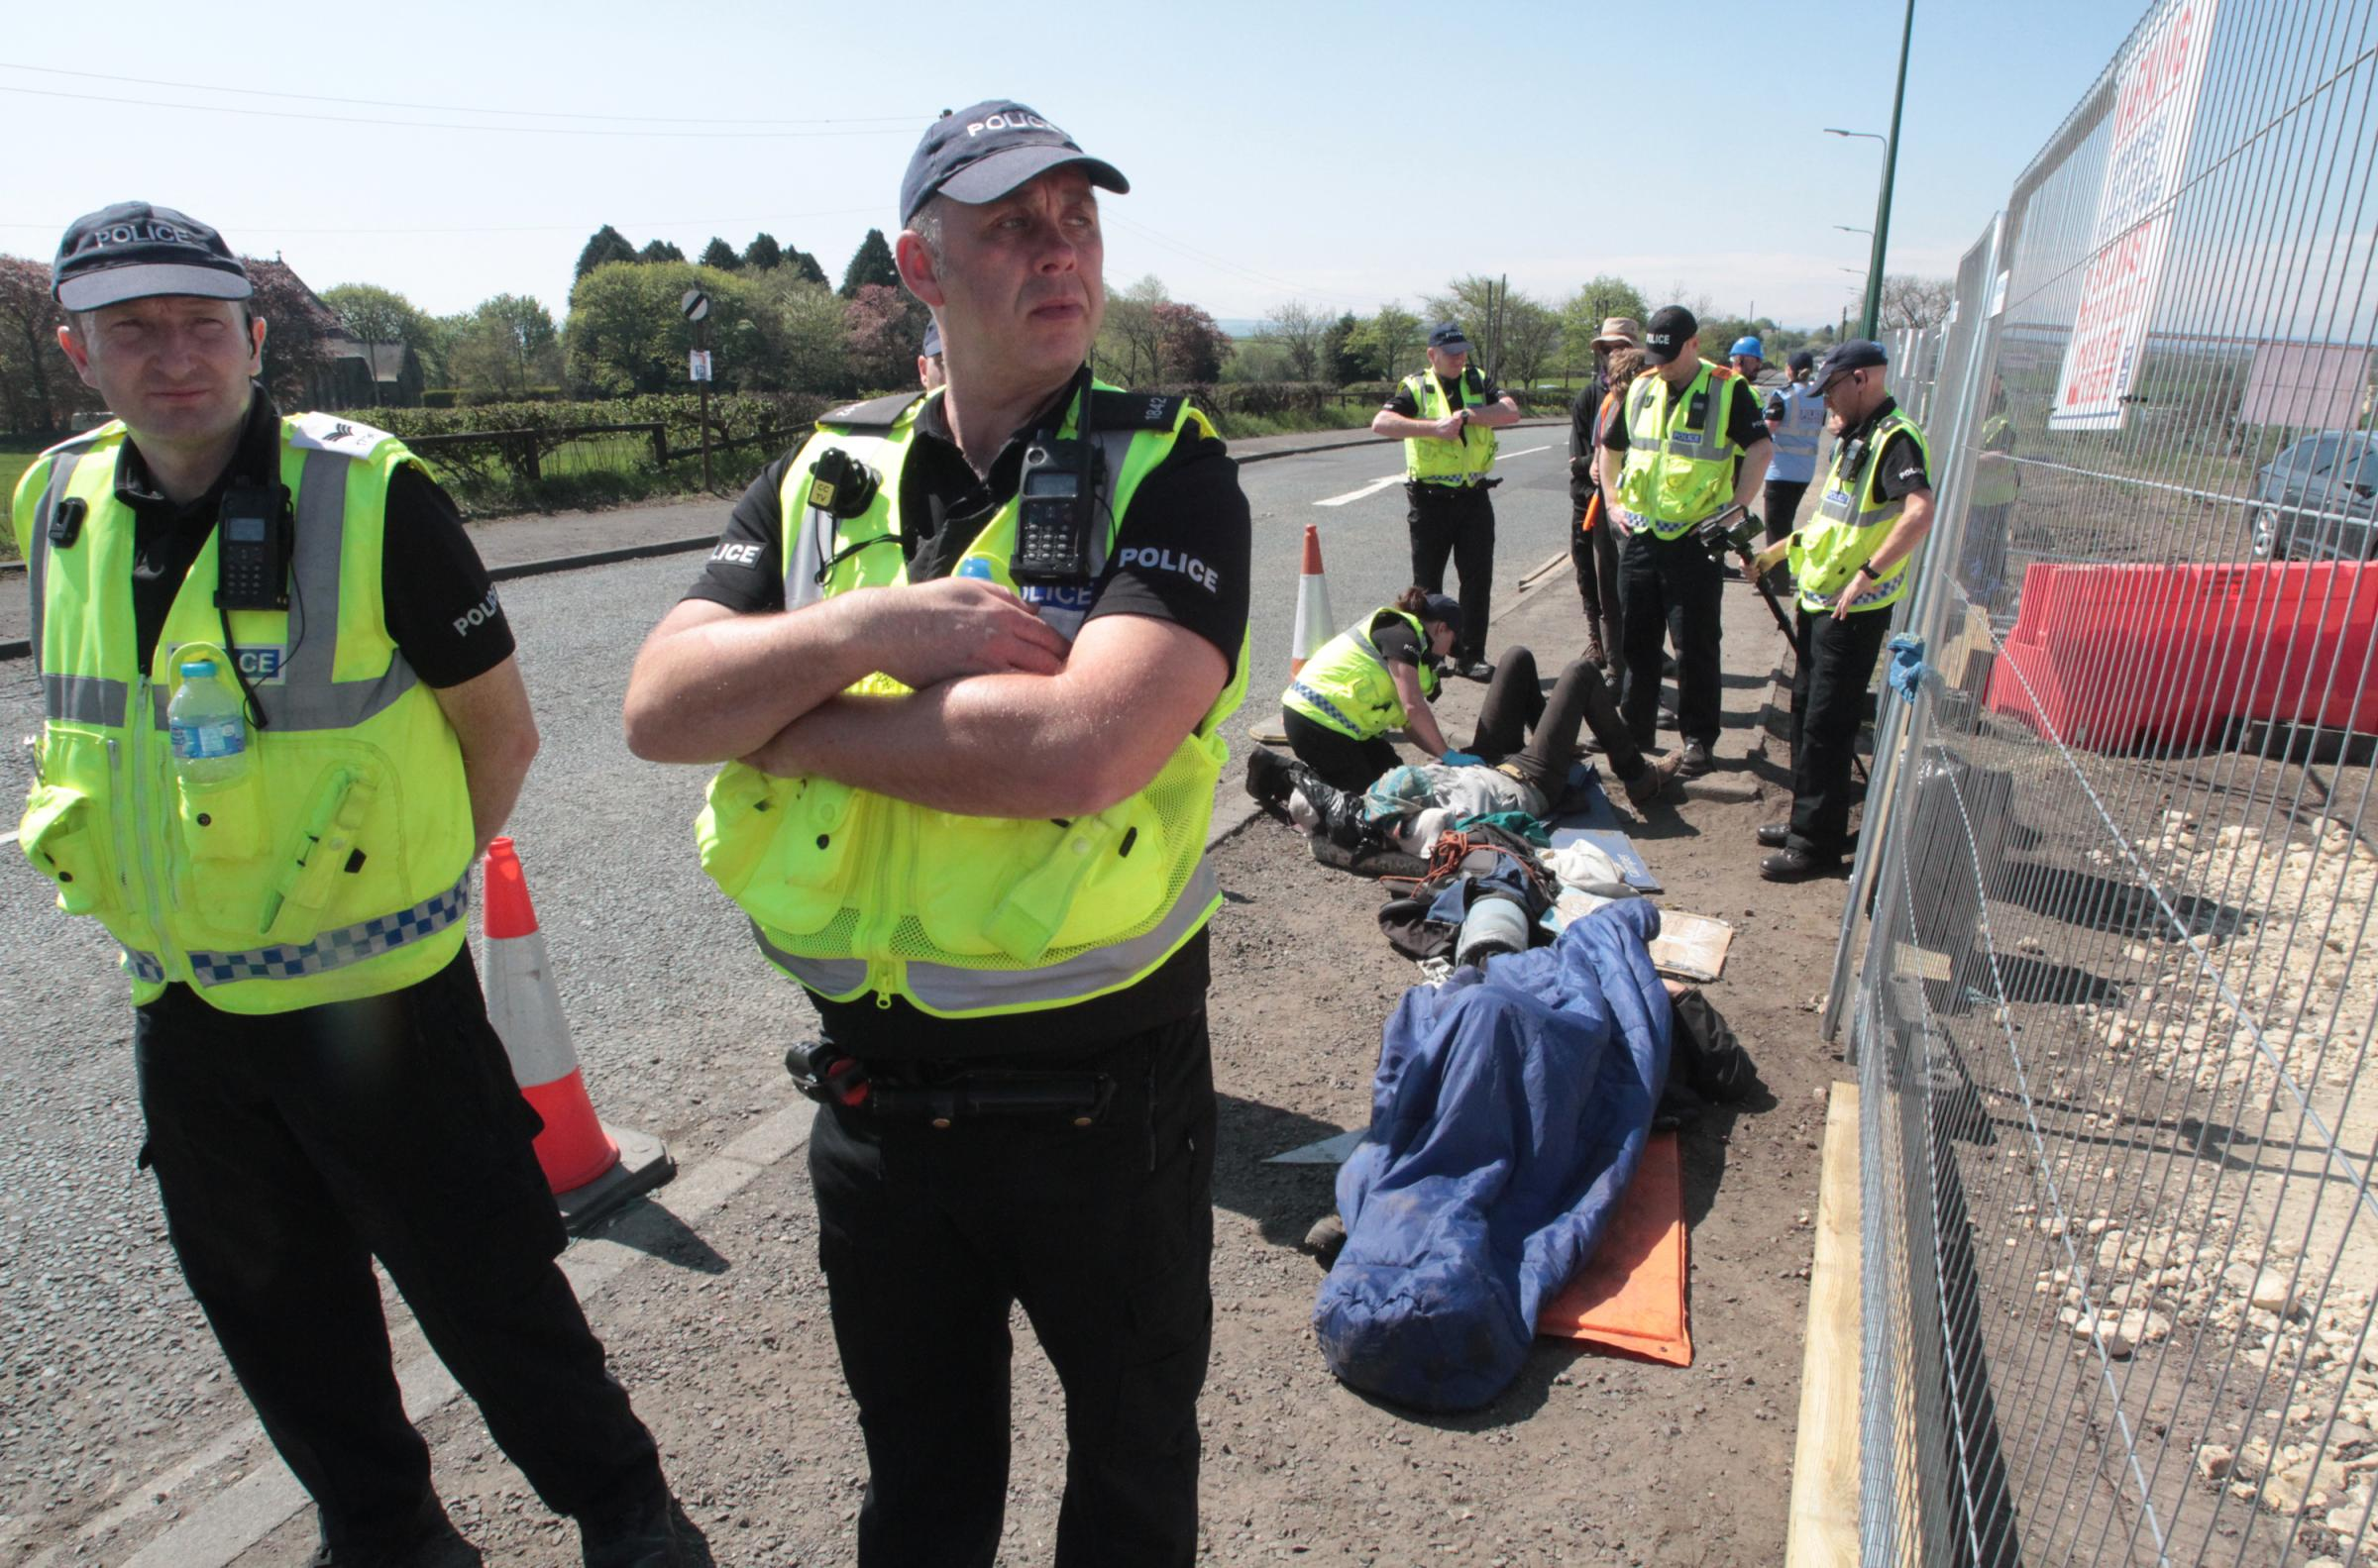 CHAINED: Activists opposed to the creation of an opencast coalmine have chained themselves to a metal tube to prevent workmen making progress Picture: Gavin Engelbrecht